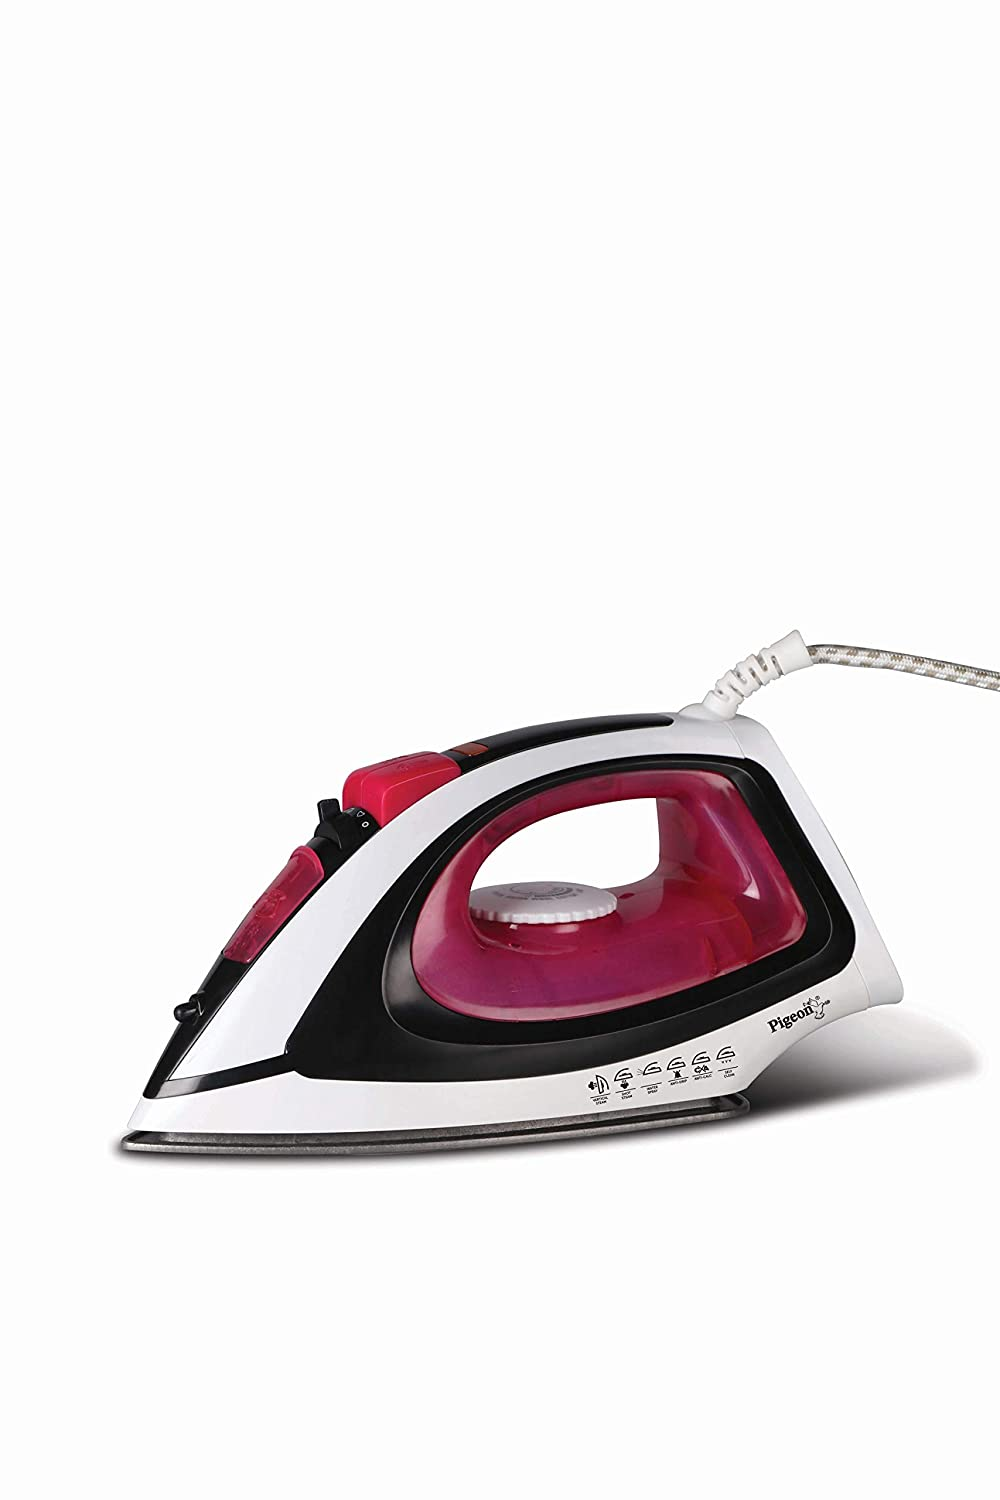 Pigeon by Stovekraft Vigour Max Steam Iron Press Box. Automatic Electric Iron for Wrinkle Free Clothes (1600 Watt)